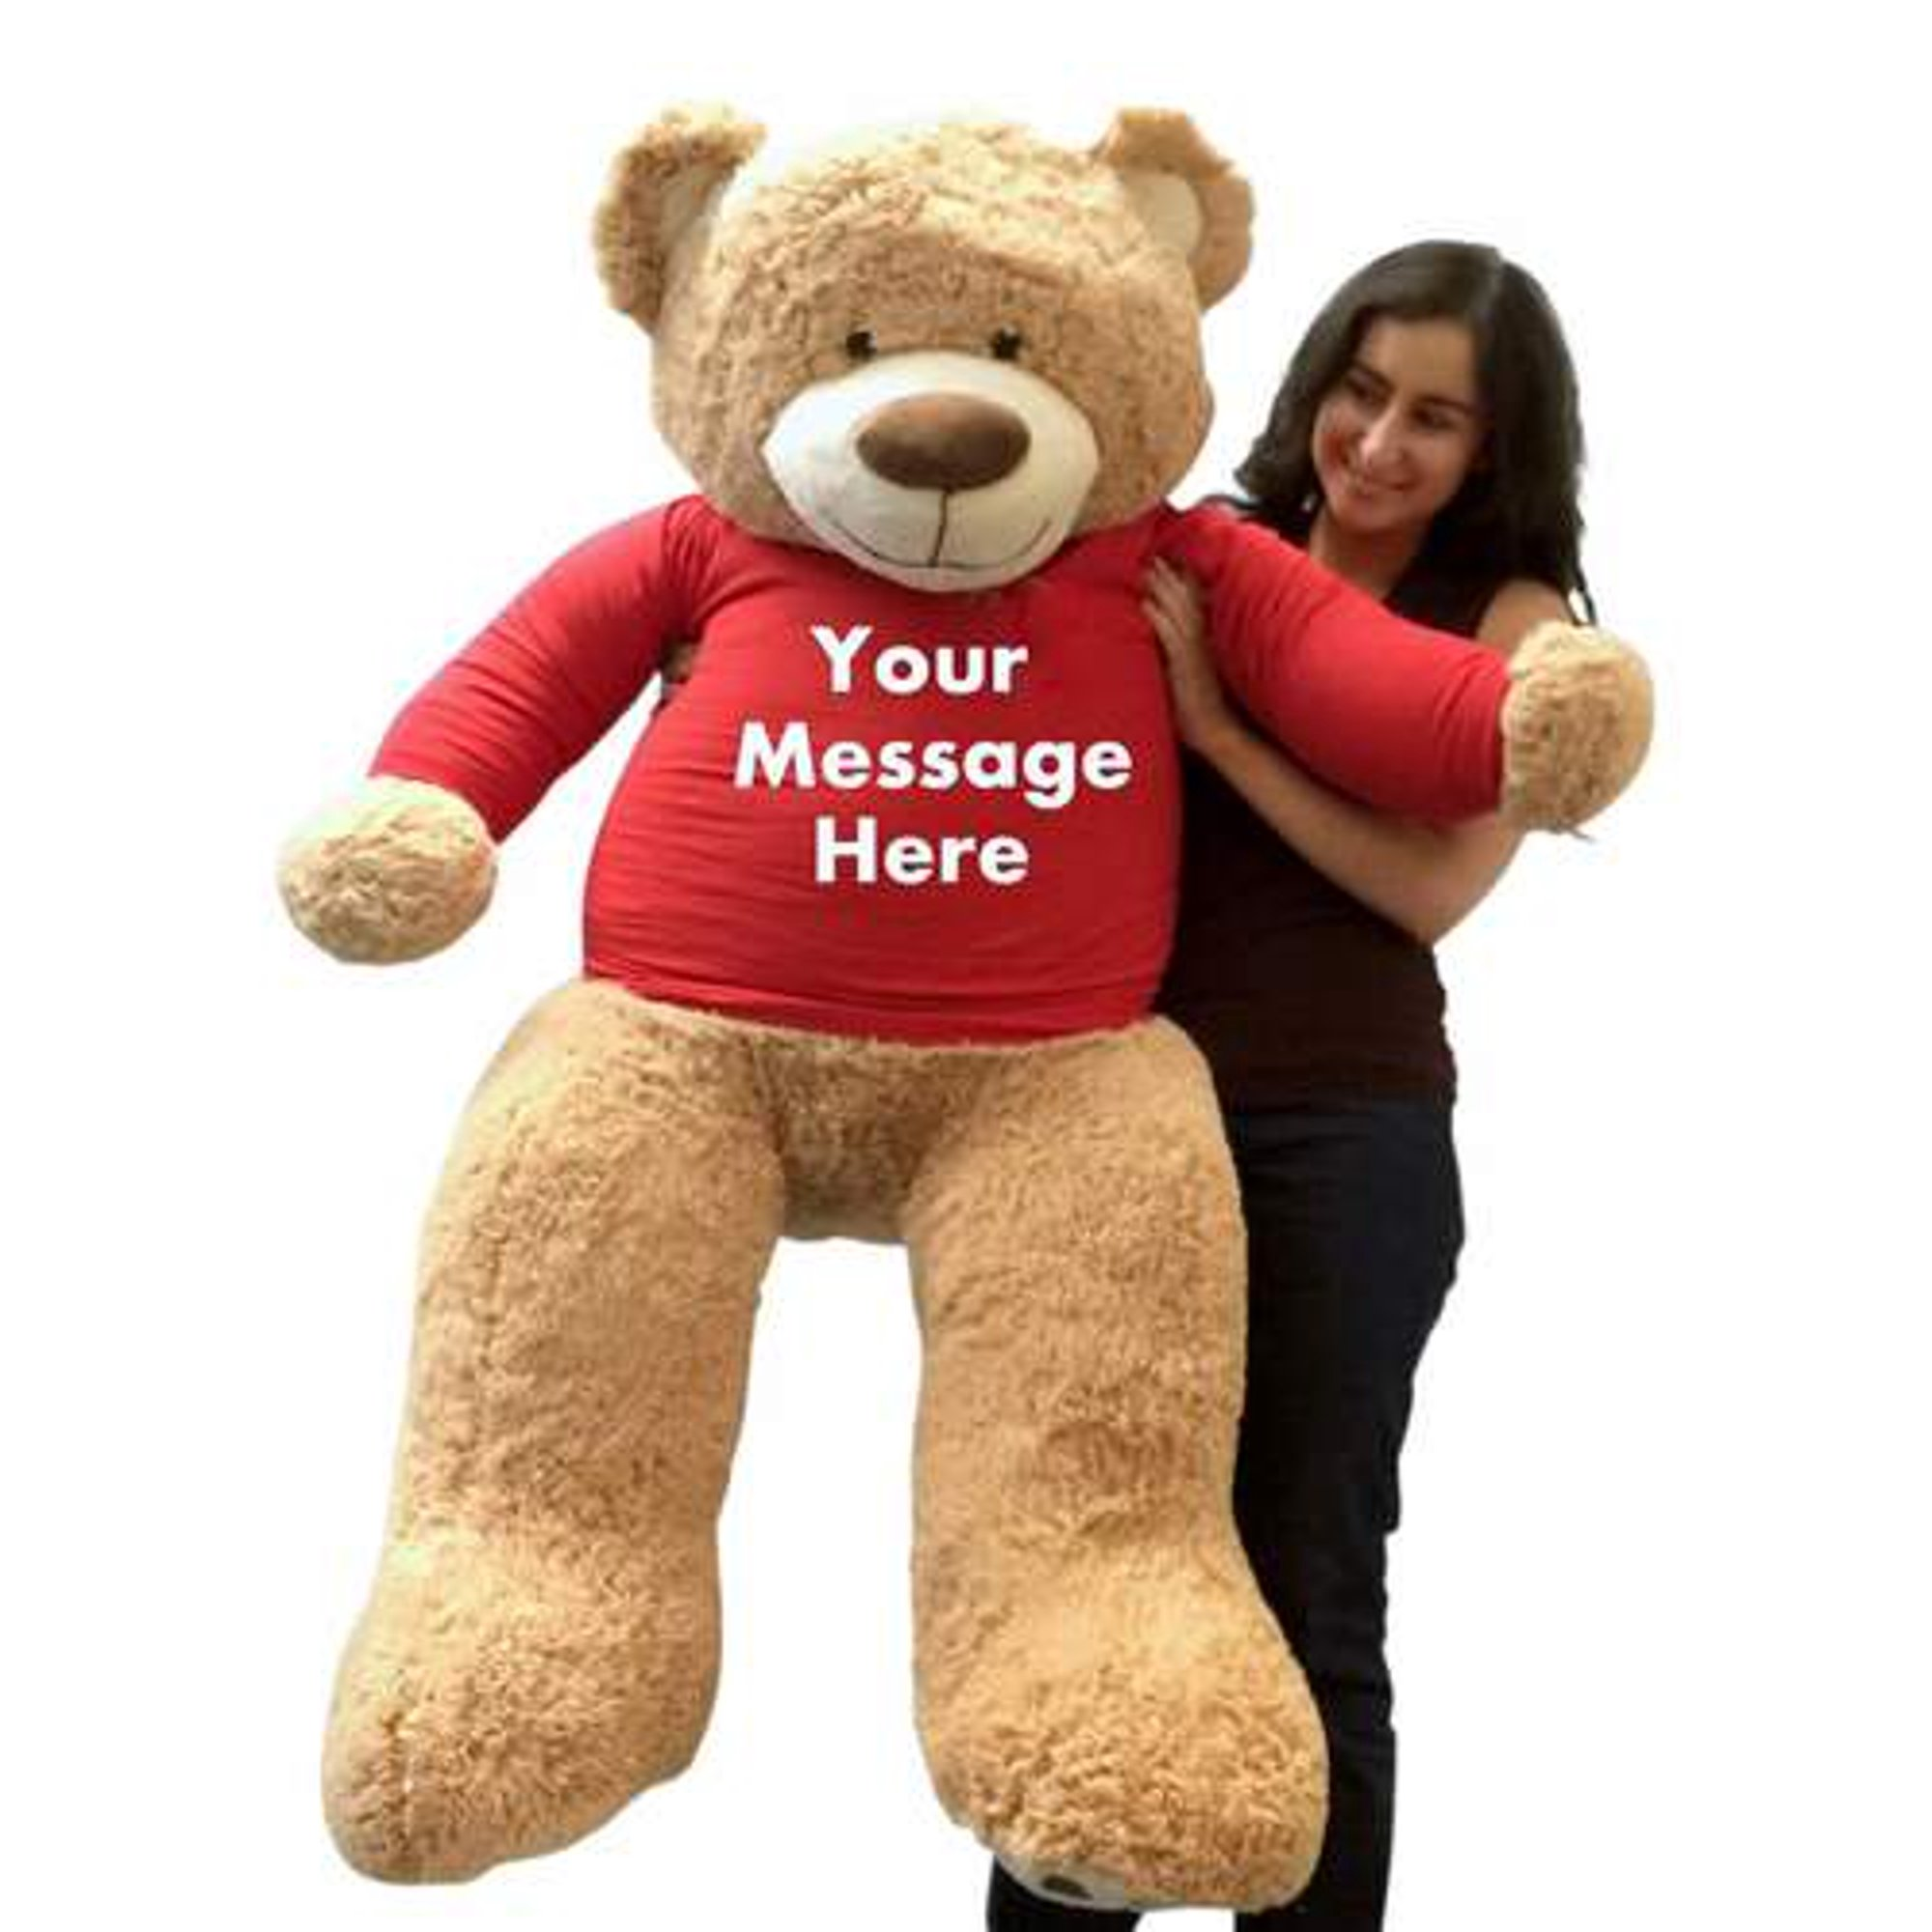 Red Teddy Bear 5 Feet, Personalized Big Plush 5 Foot Giant Teddy Bear Wearing Customized Red Color T Shirt With Your Message Walmart Canada